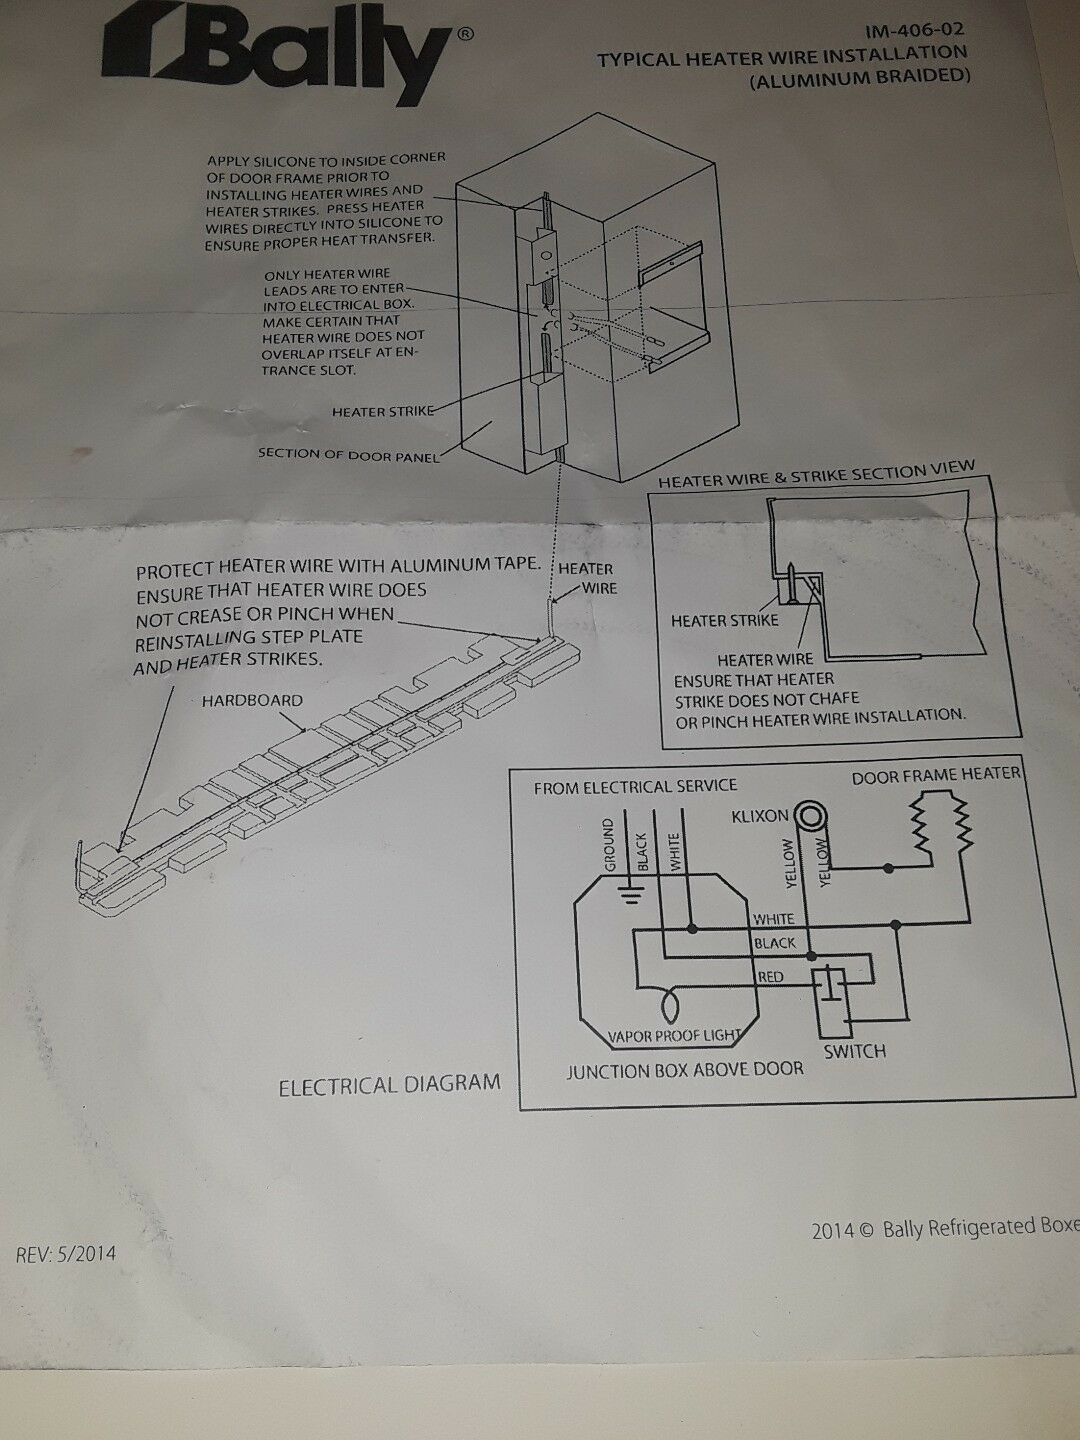 Bally Refrigerated Boxes 018291 Aluminum id Framer Heater Wire ... on refrigeration piping diagrams, refrigeration system diagram, whirlpool schematic diagrams, refrigeration circuit diagram, refrigeration tools, refrigeration blueprints, refrigeration cycle diagram,